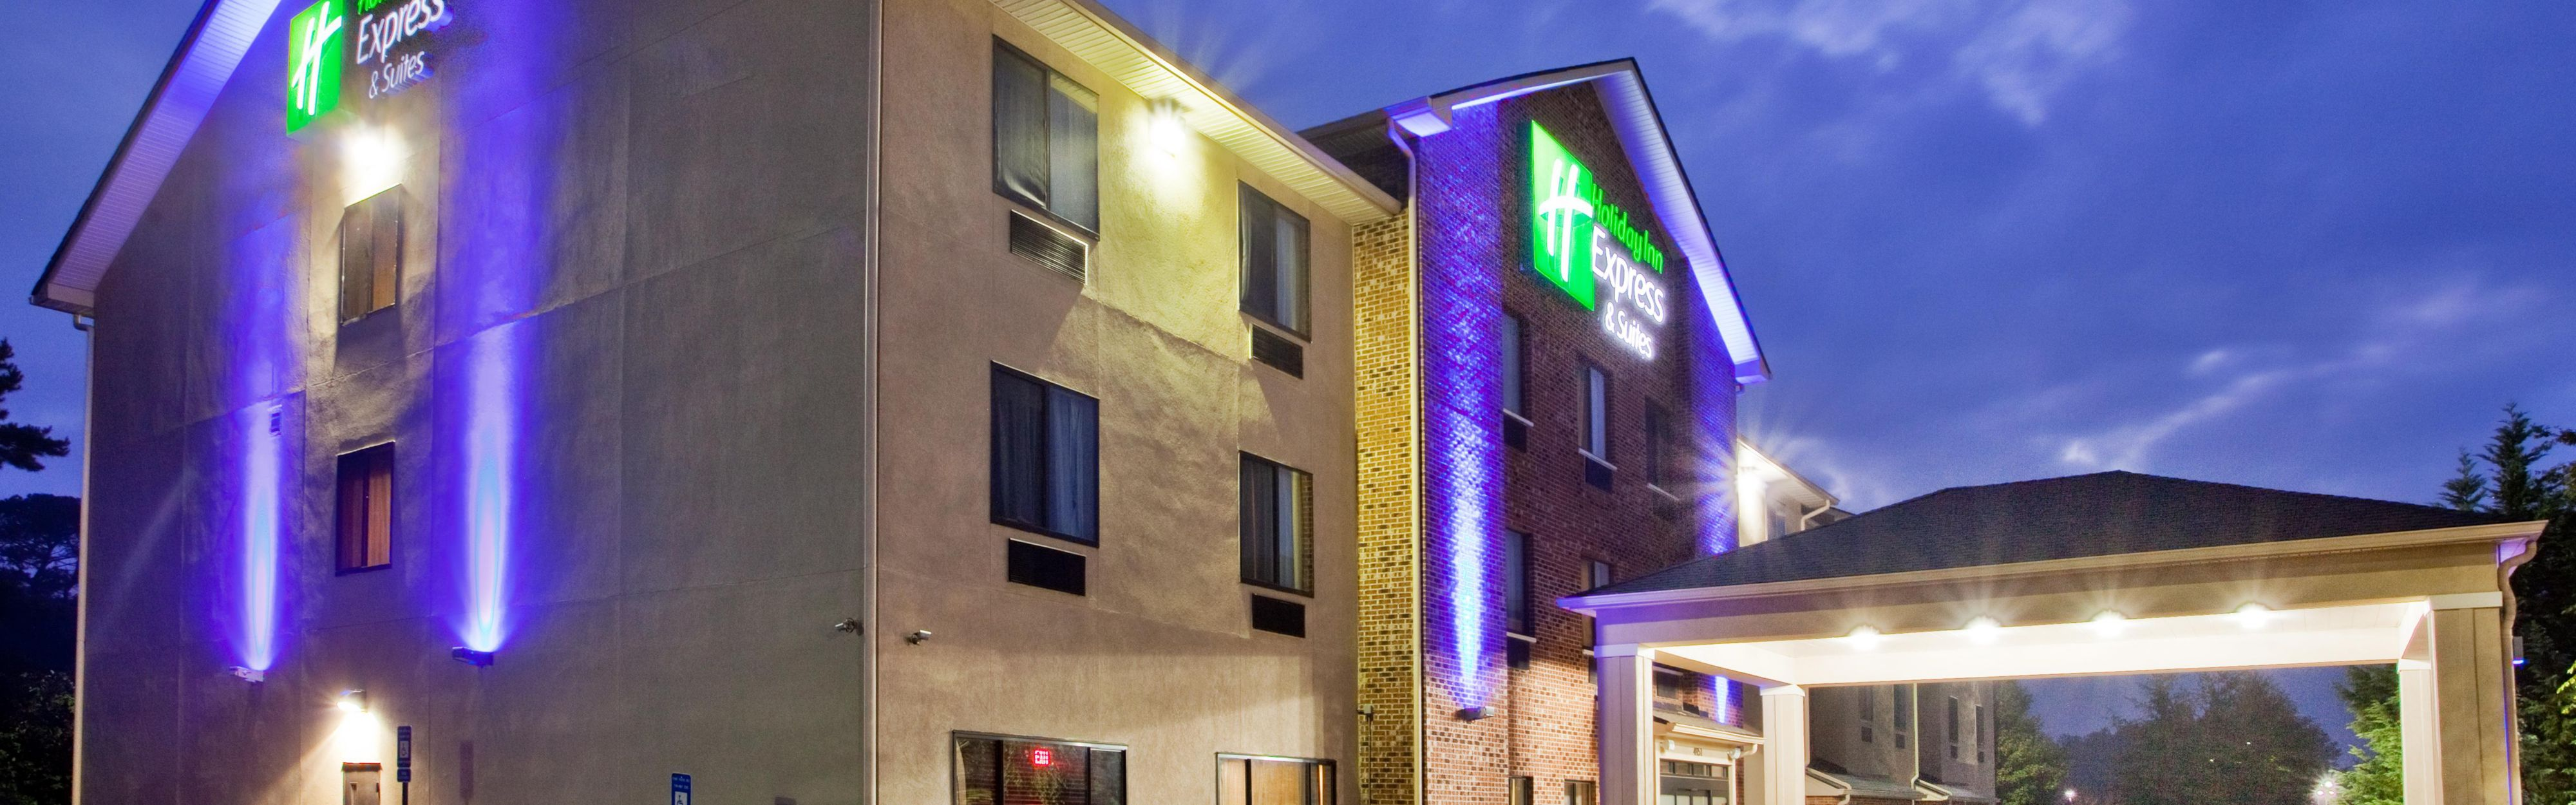 Amazing Front Desk Hotel Exterior With Hotels Near Flowery Branch Ga